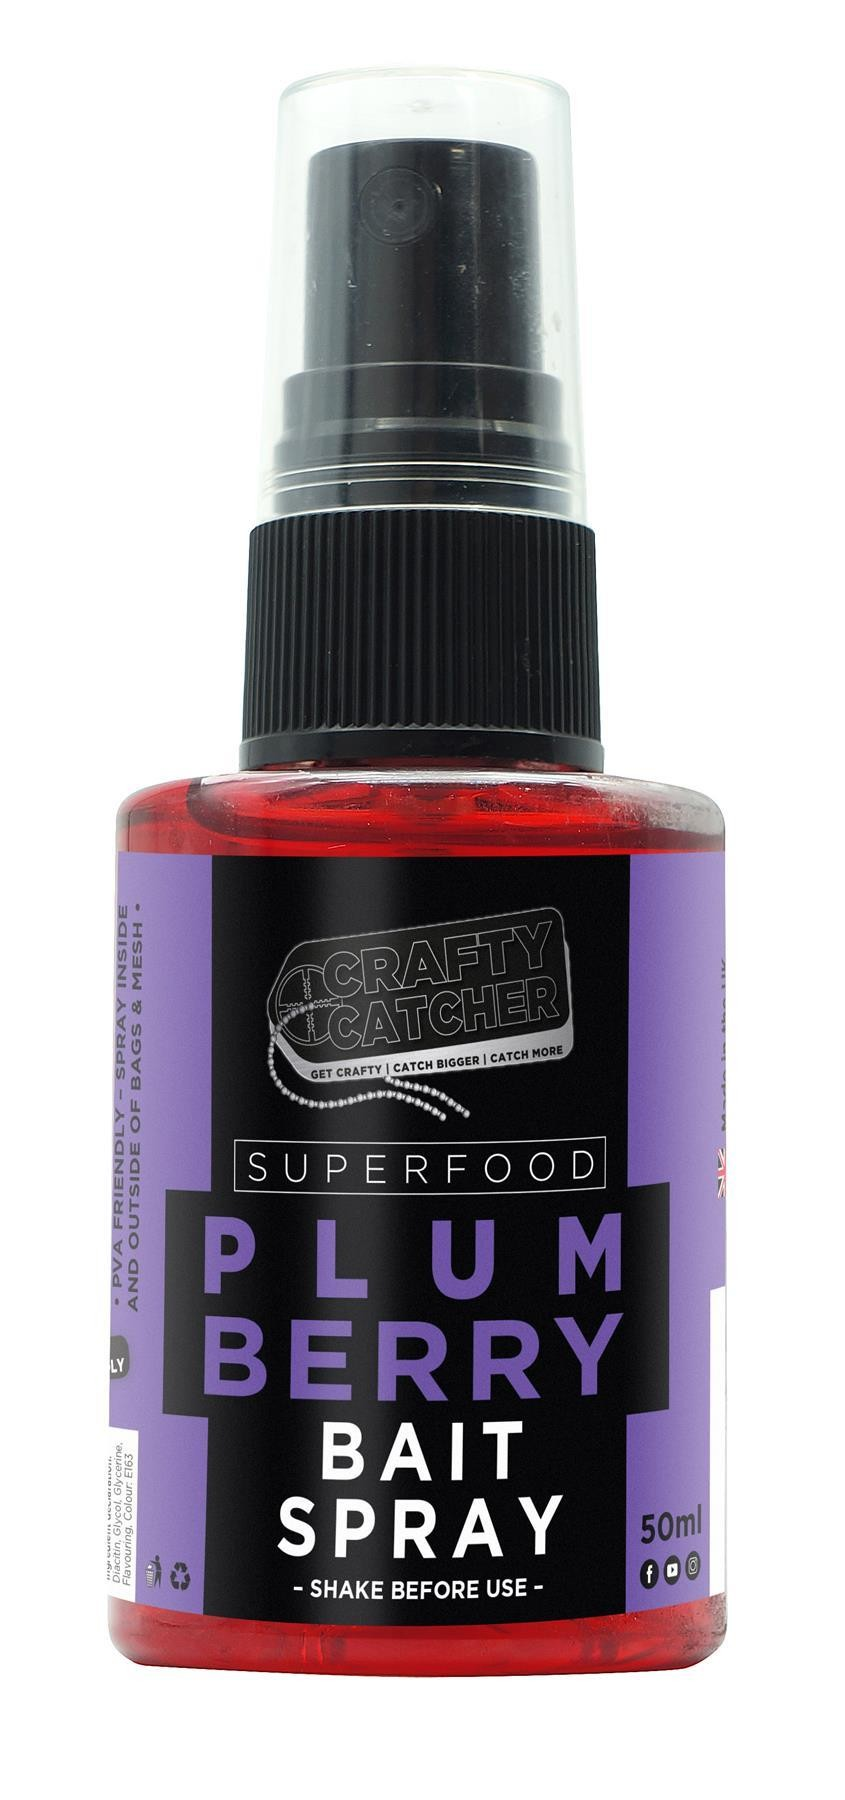 Crafty Catcher Superfood Plum Berry Bait Spray 50ml Carp Fishing Bait